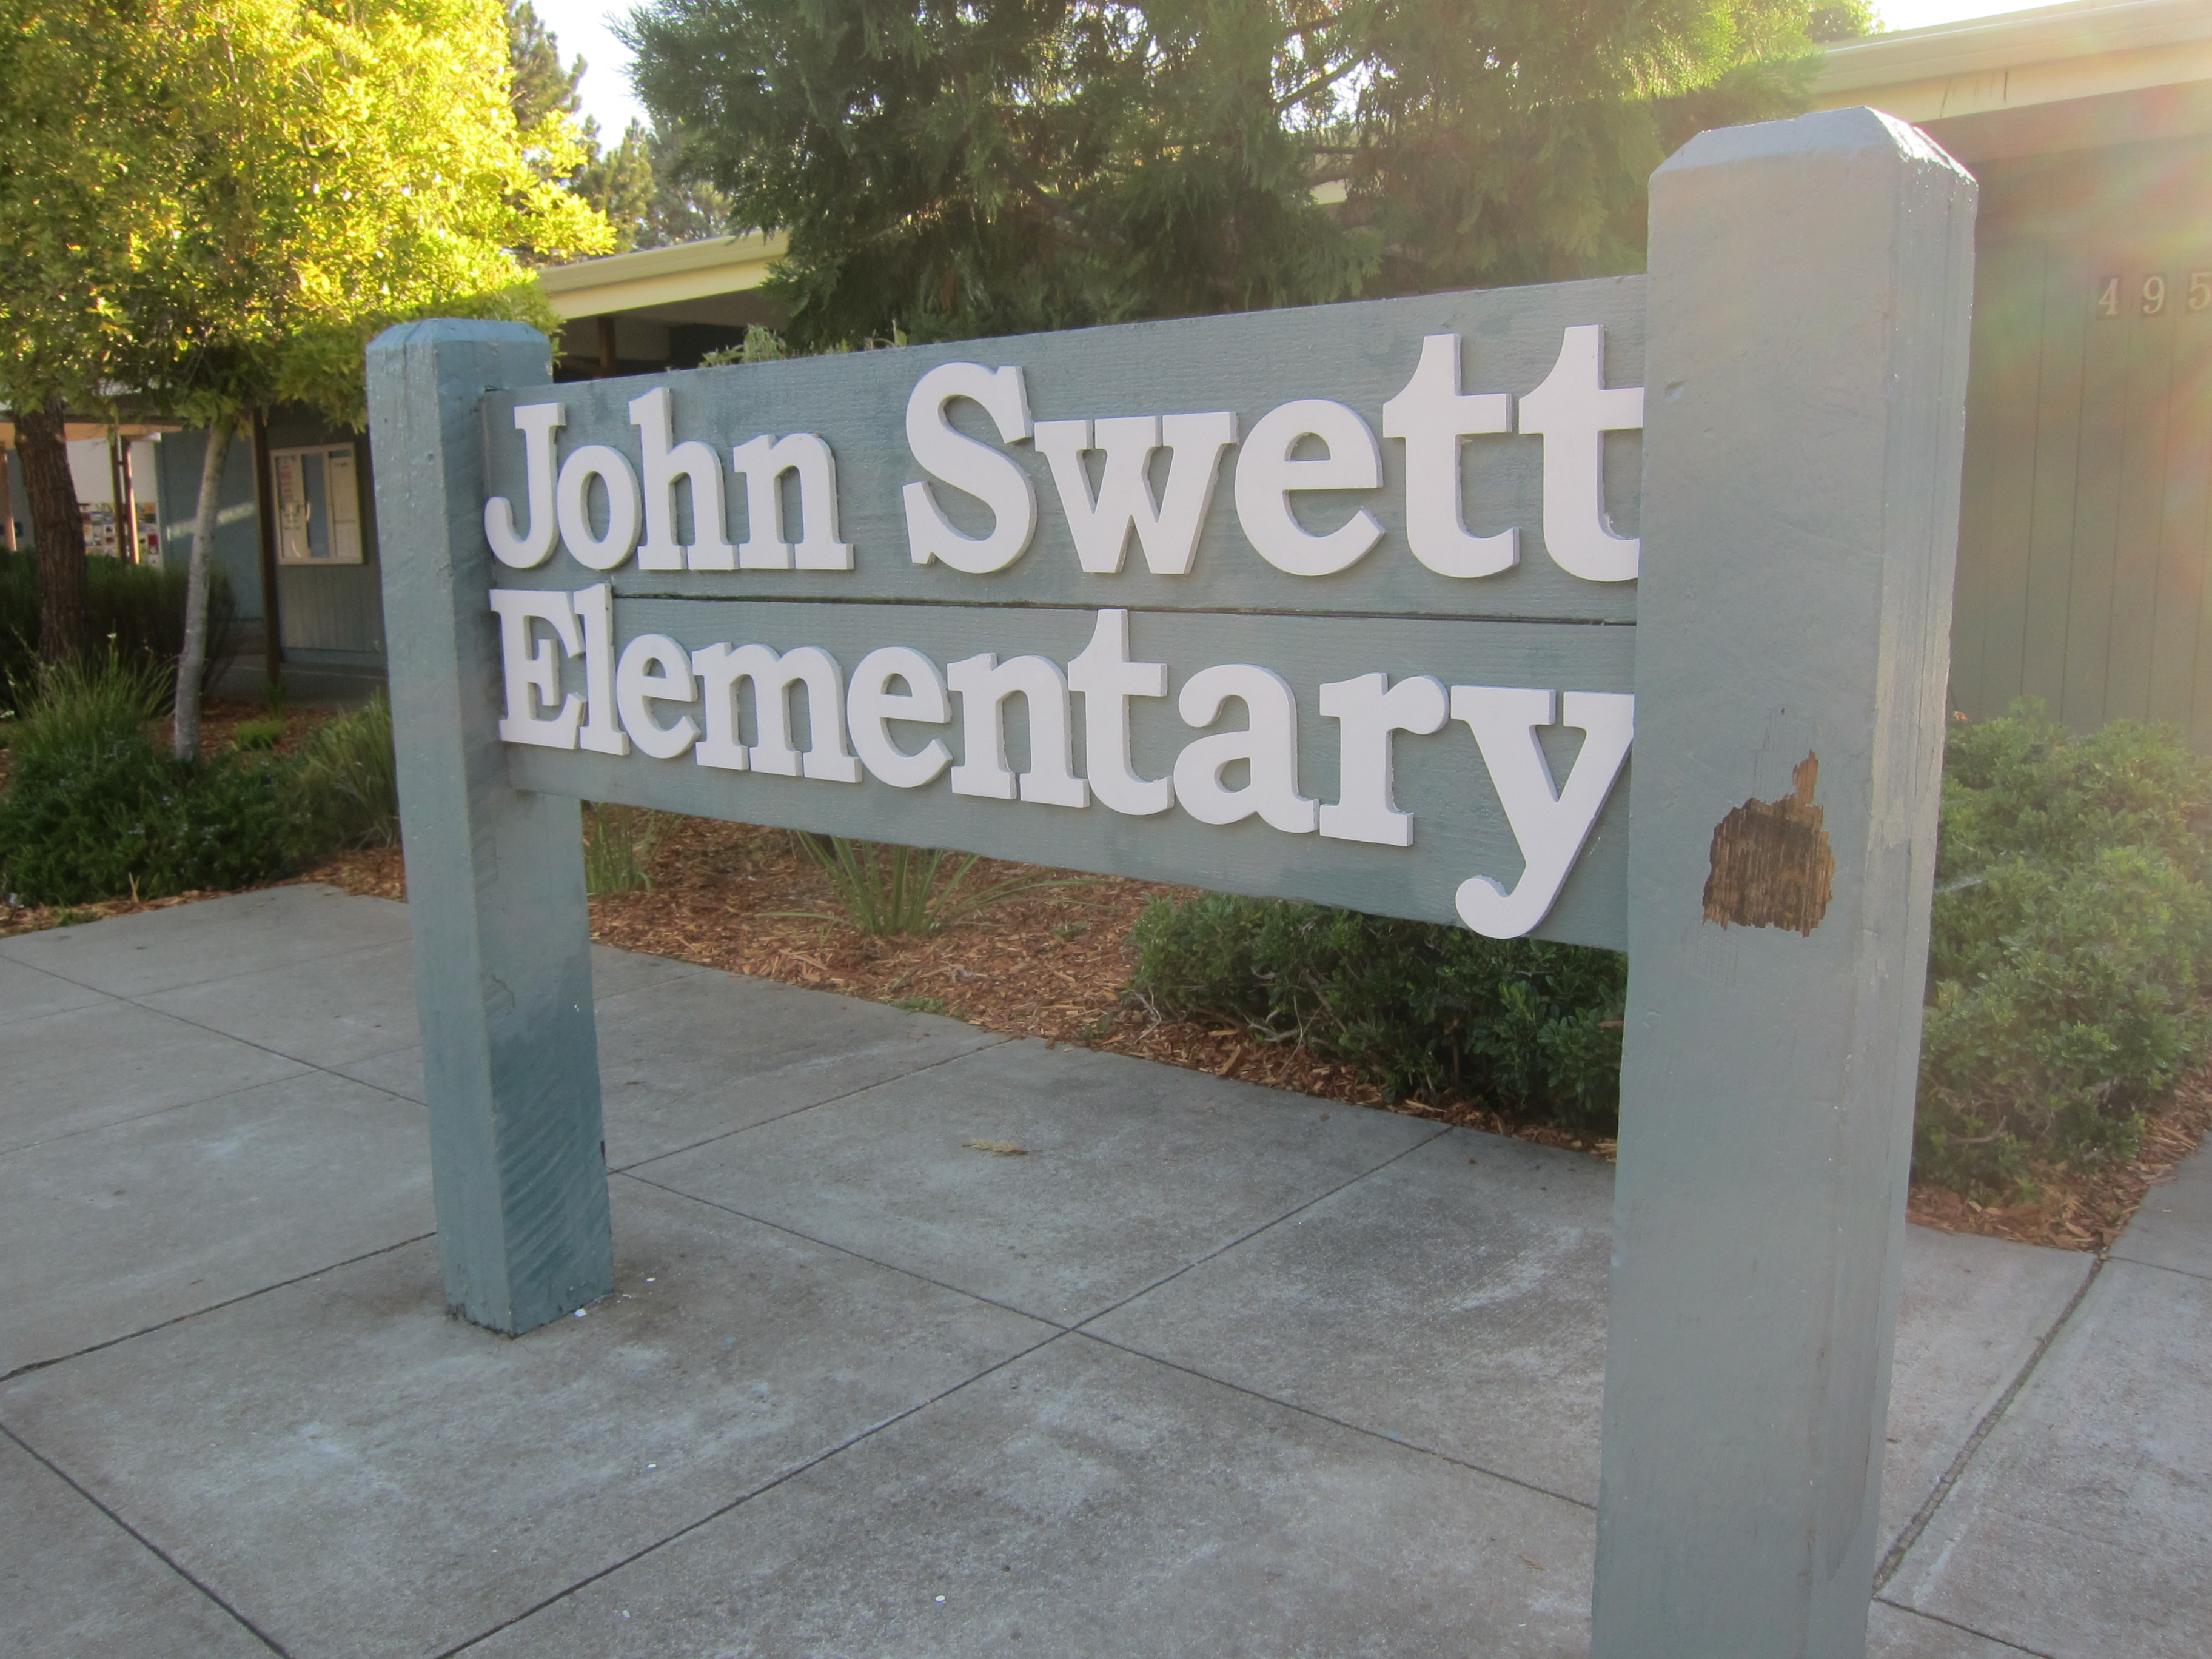 Image of the John Sweet Elementary school sign.